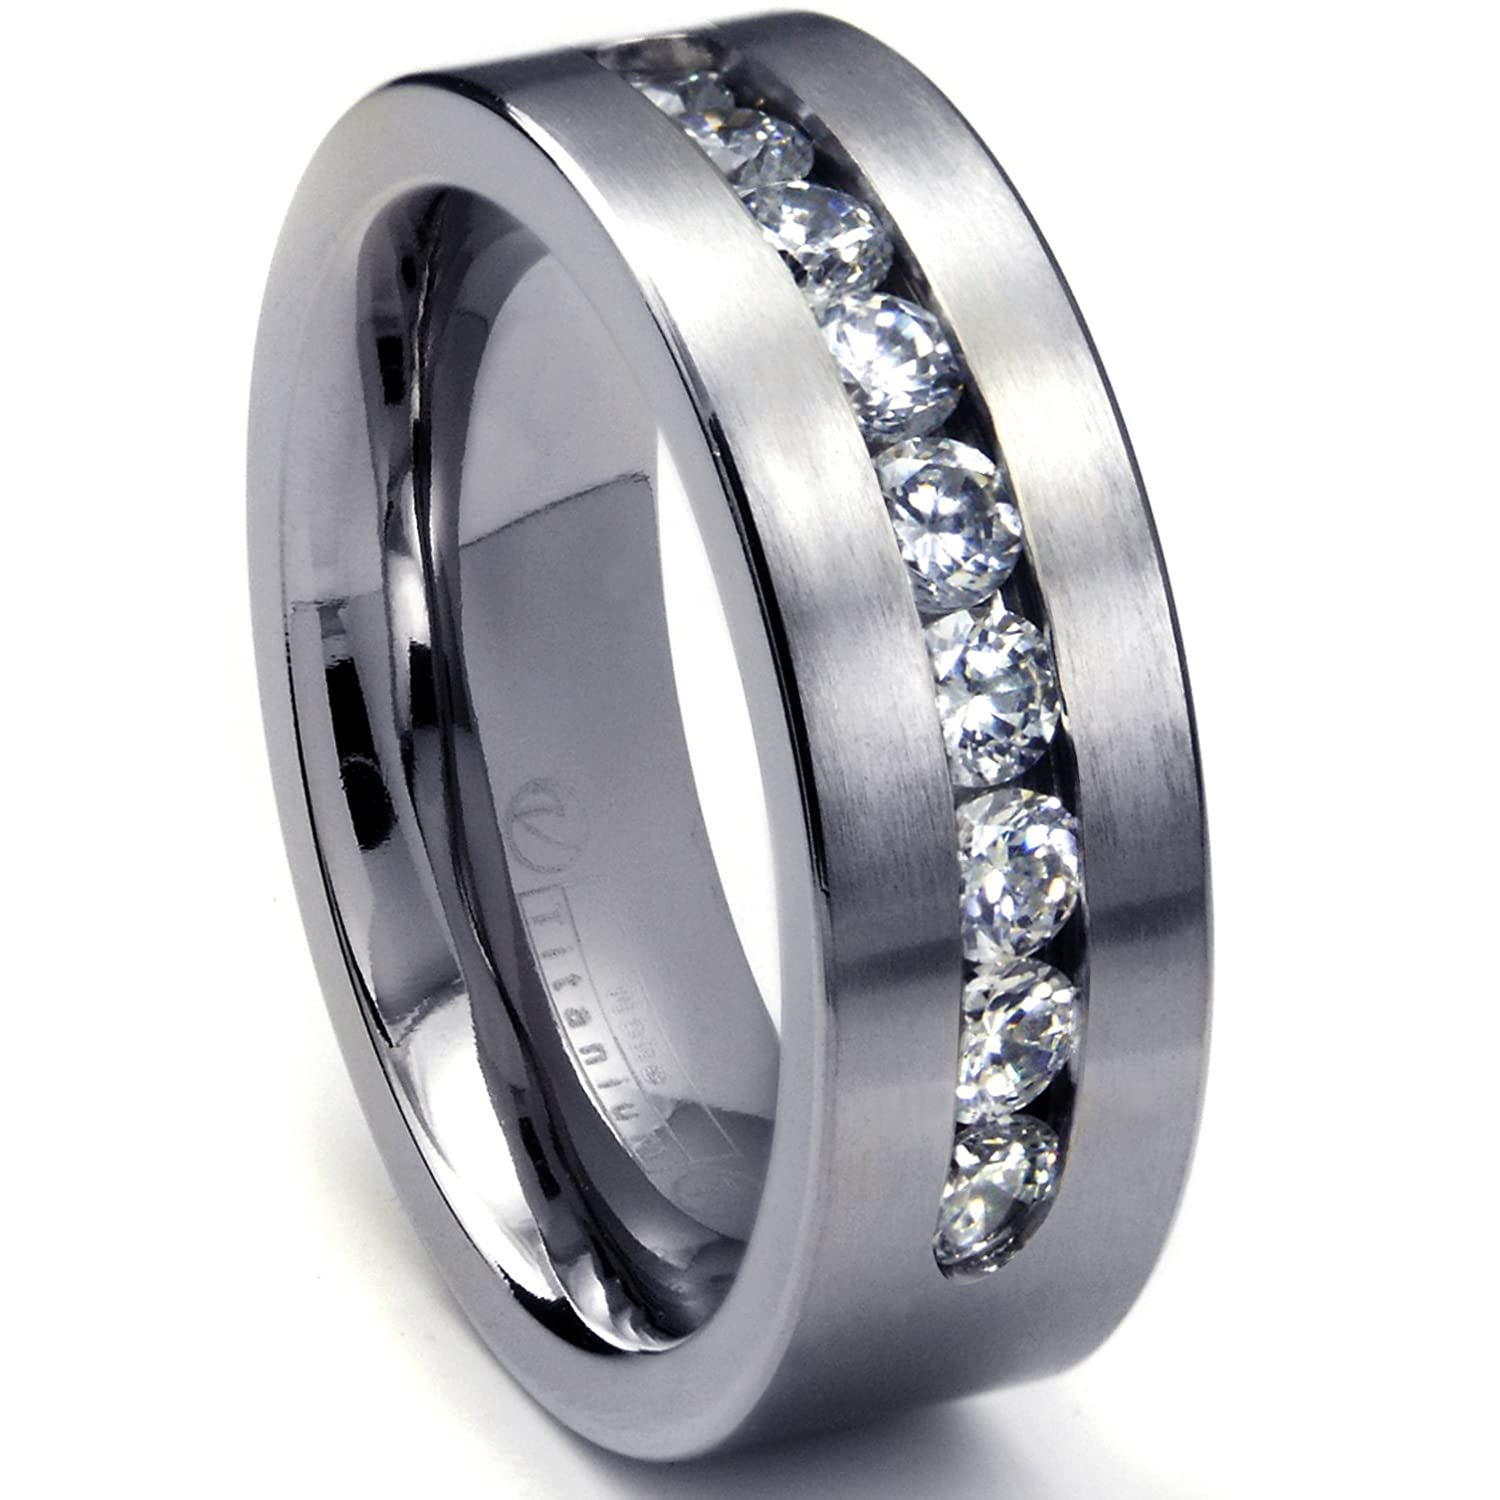 Amazoncom 8 MM Mens Titanium ring wedding band with 9 large